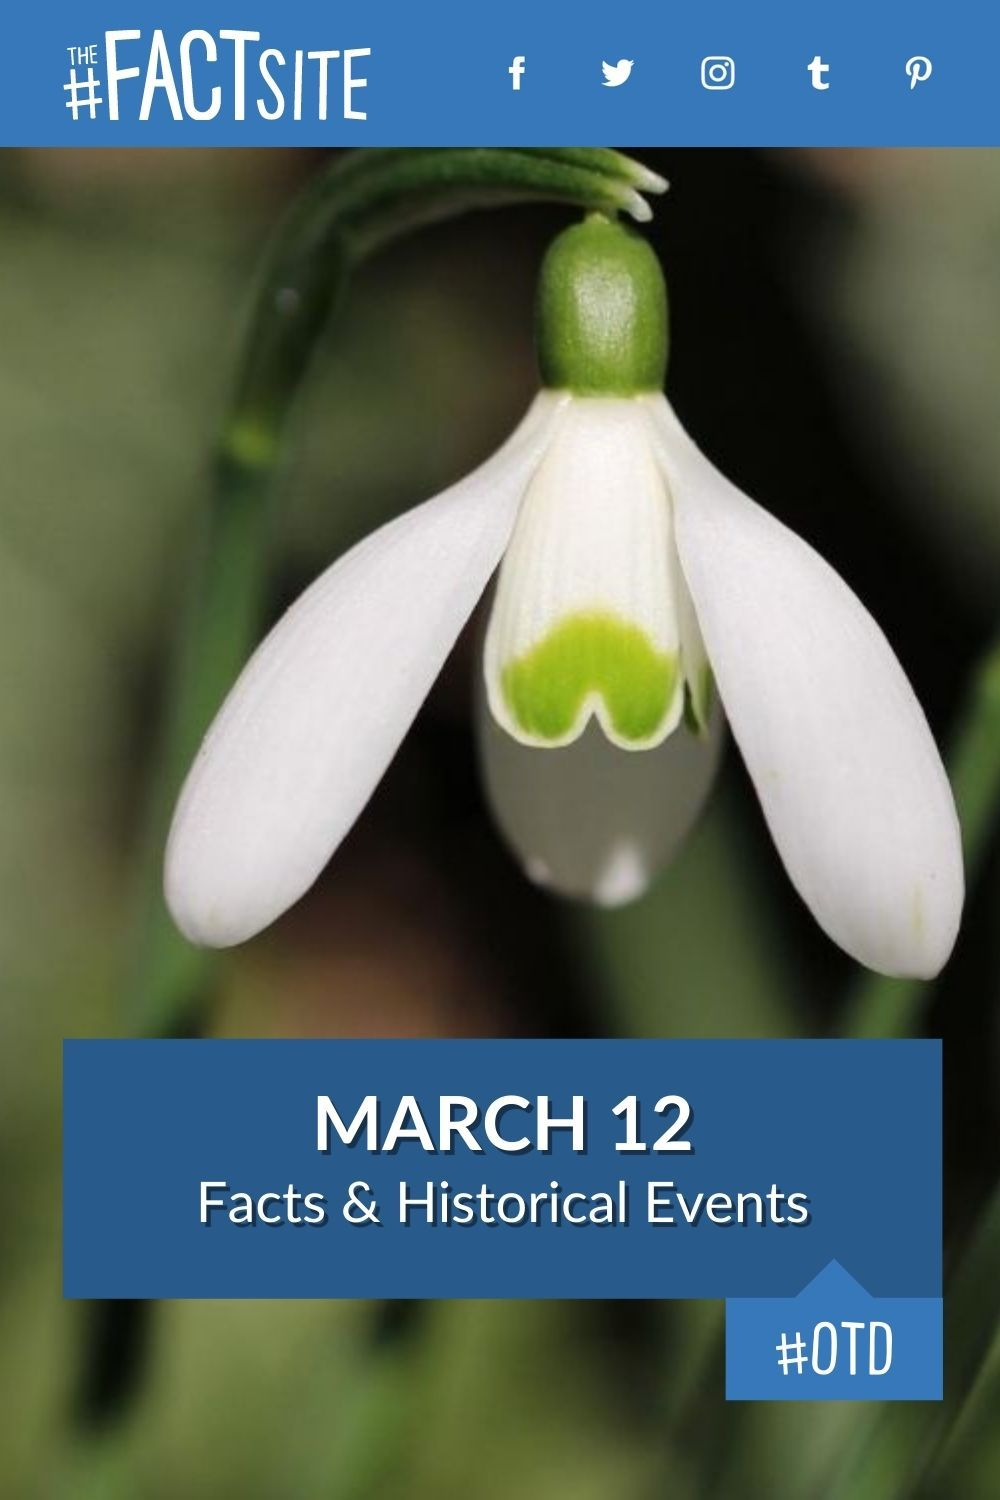 Facts & Historic Events That Happened on March 12